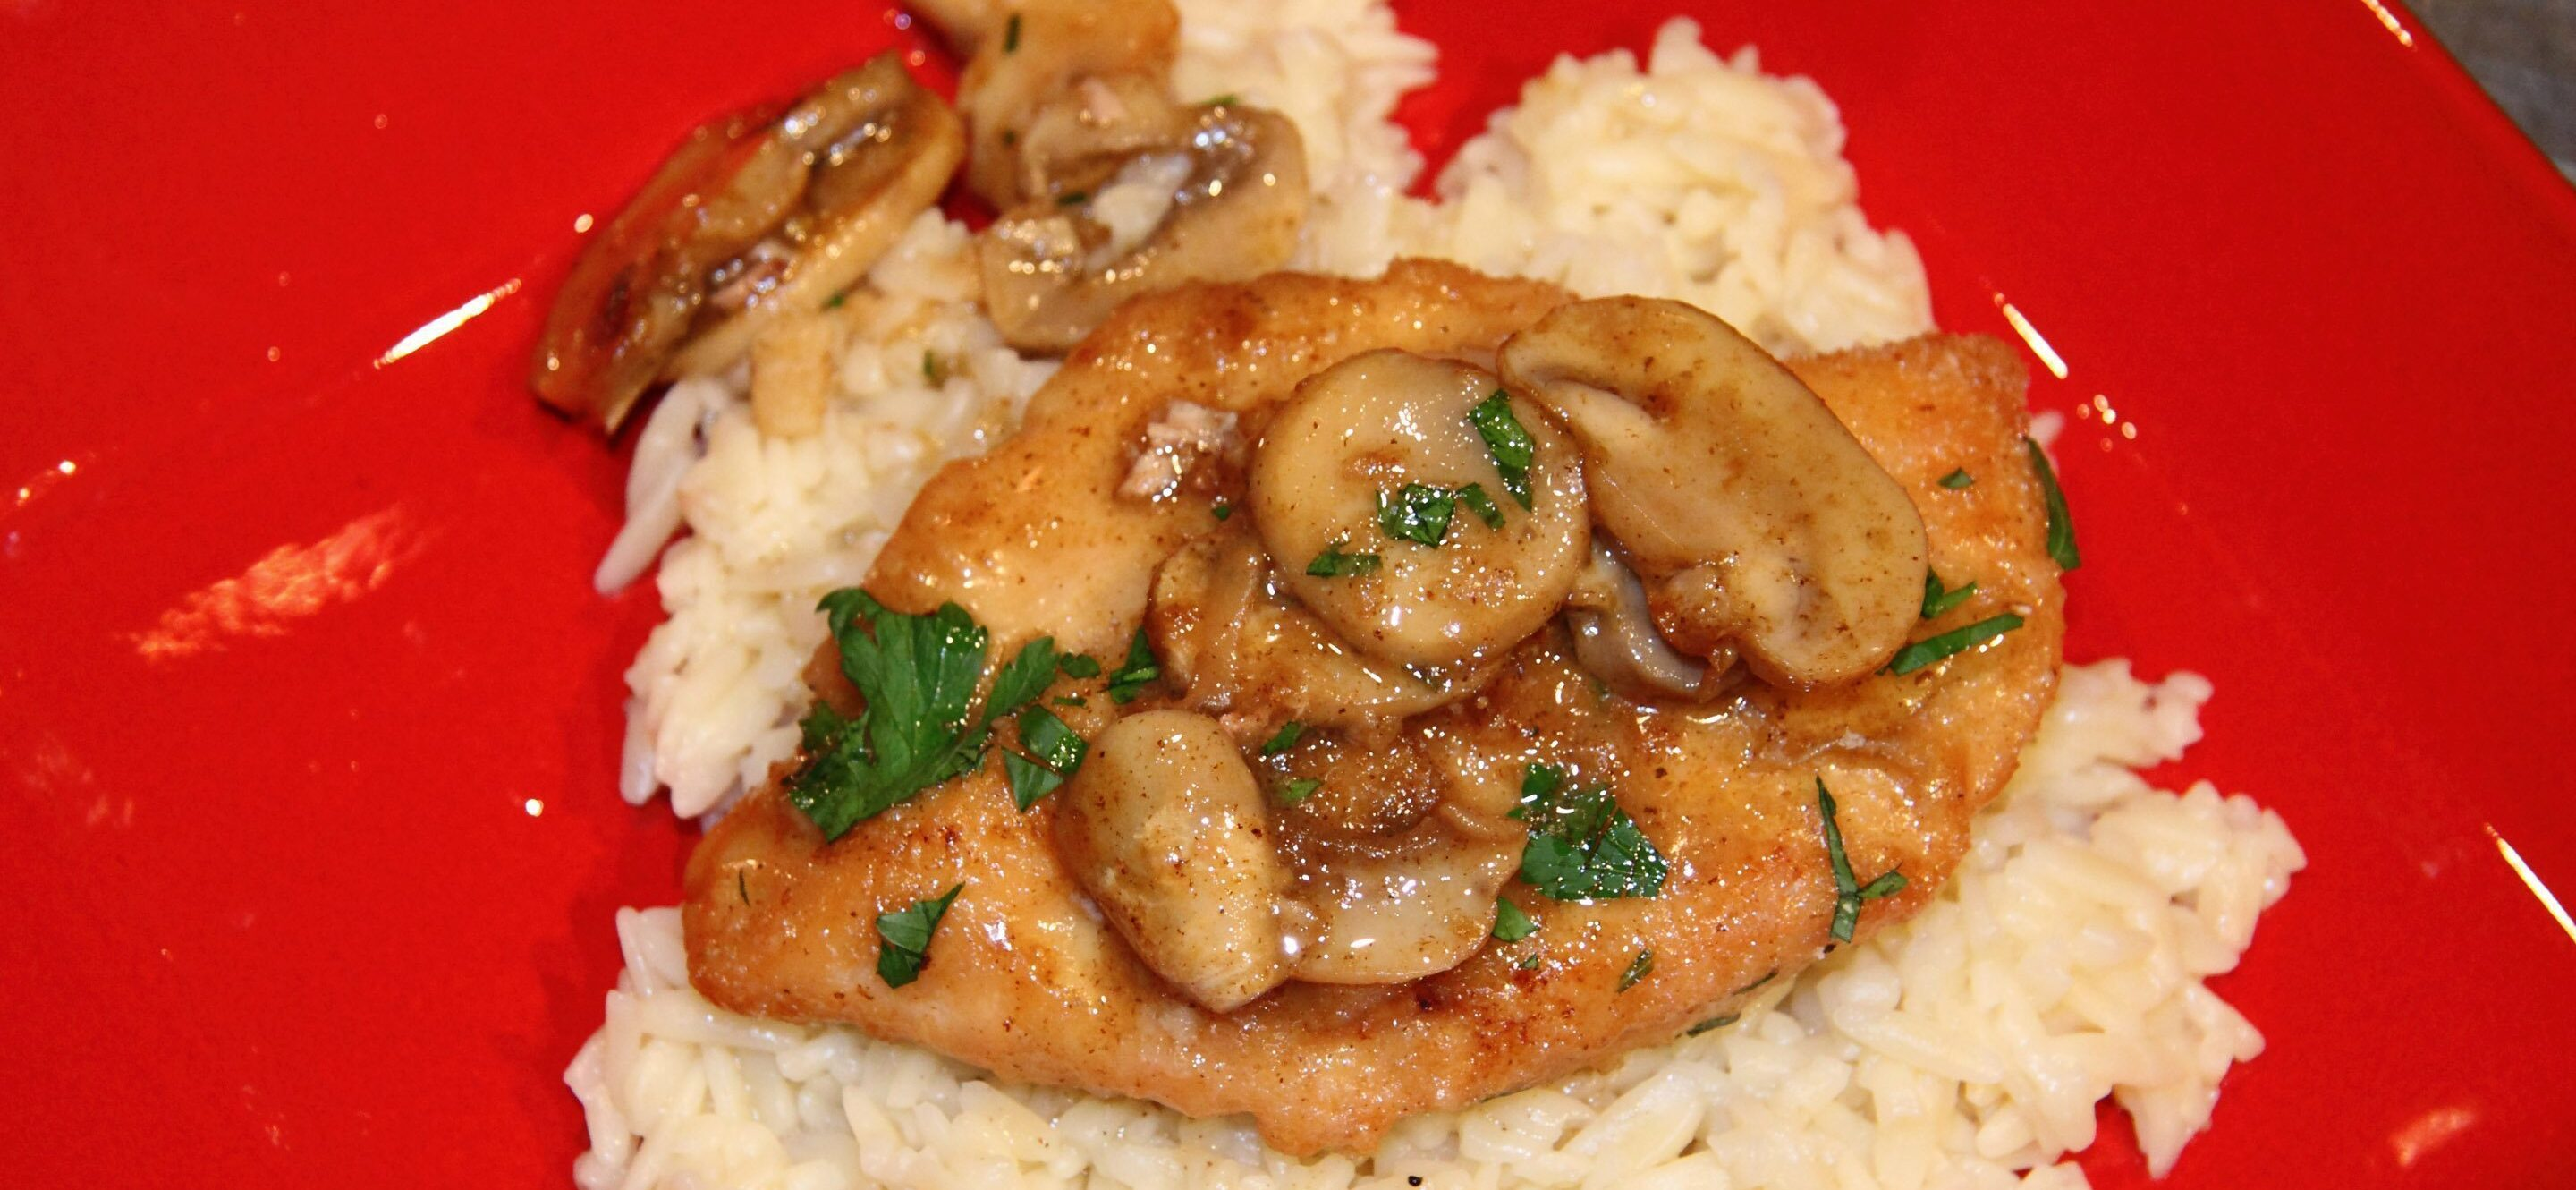 garlic chicken with mushrooms